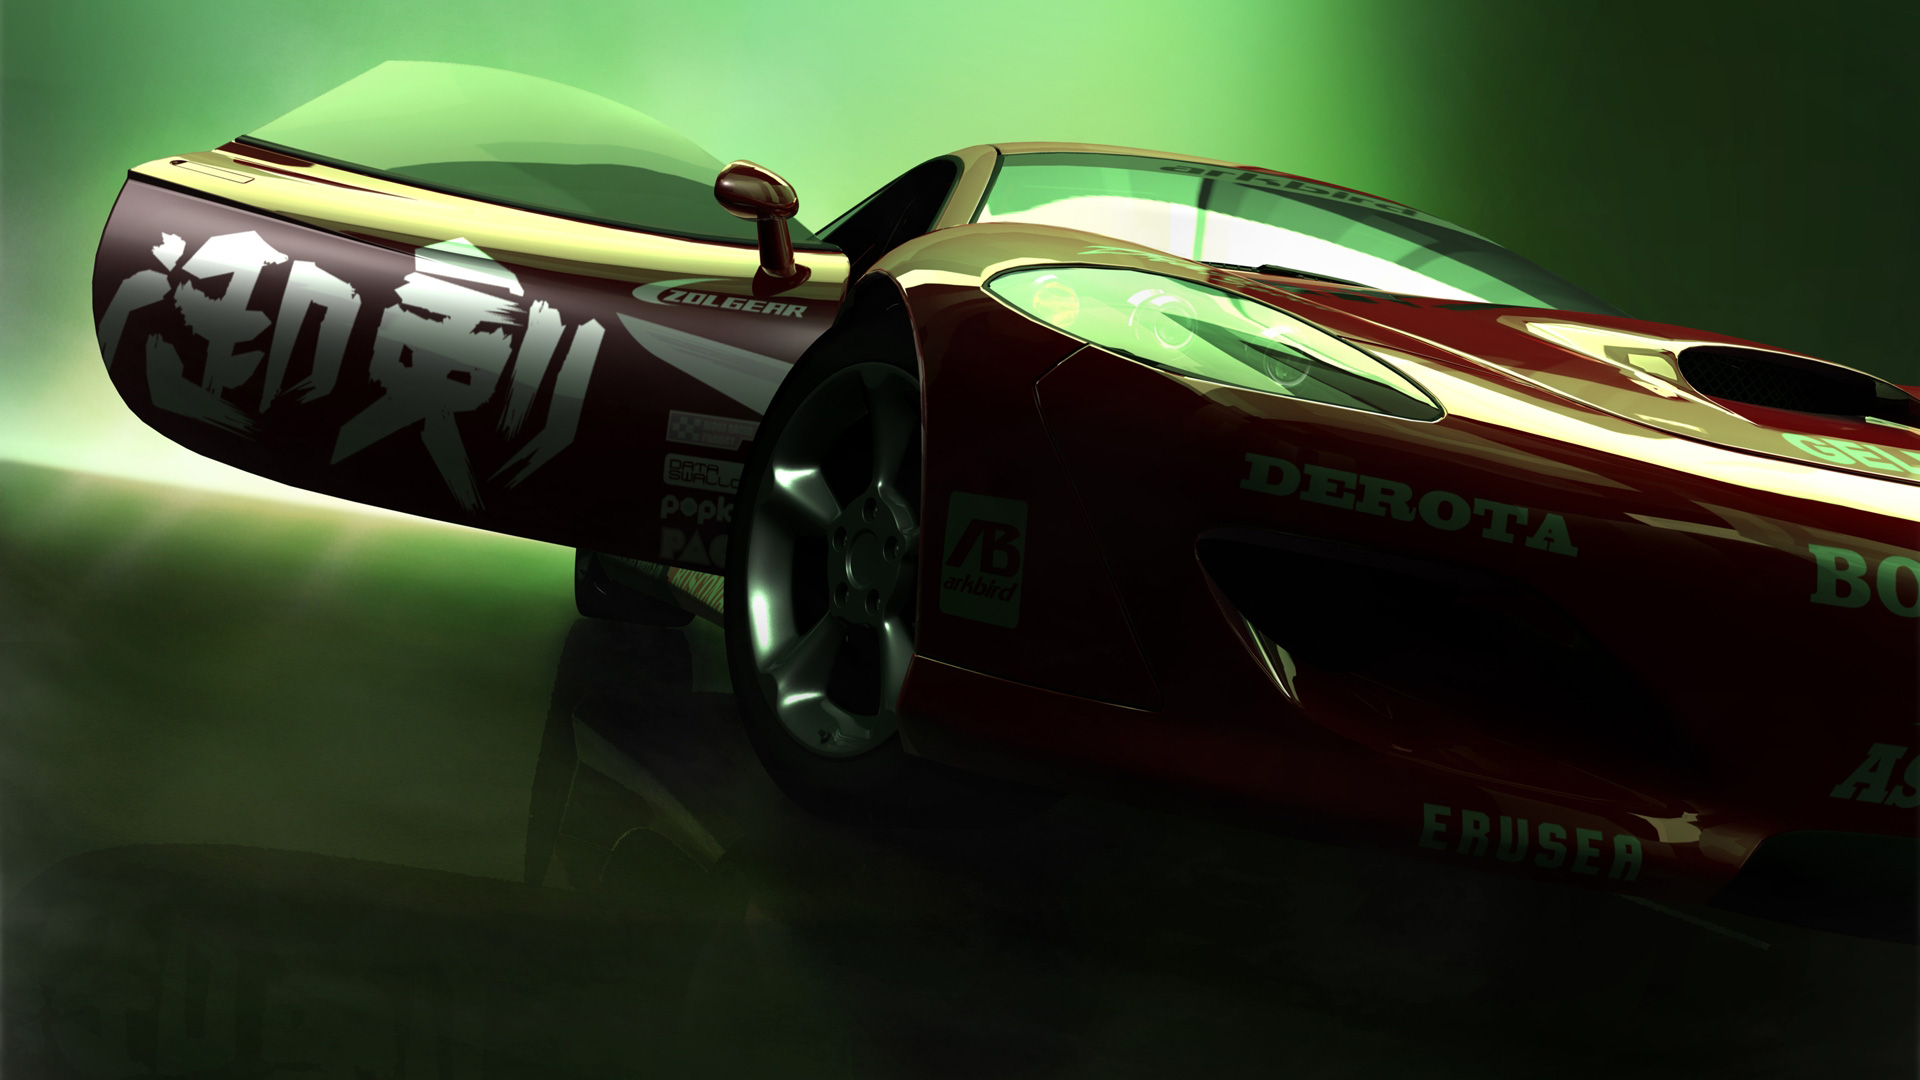 Ridge Racer 1080p HD Car Wallpapers HD Wallpapers 1920x1080